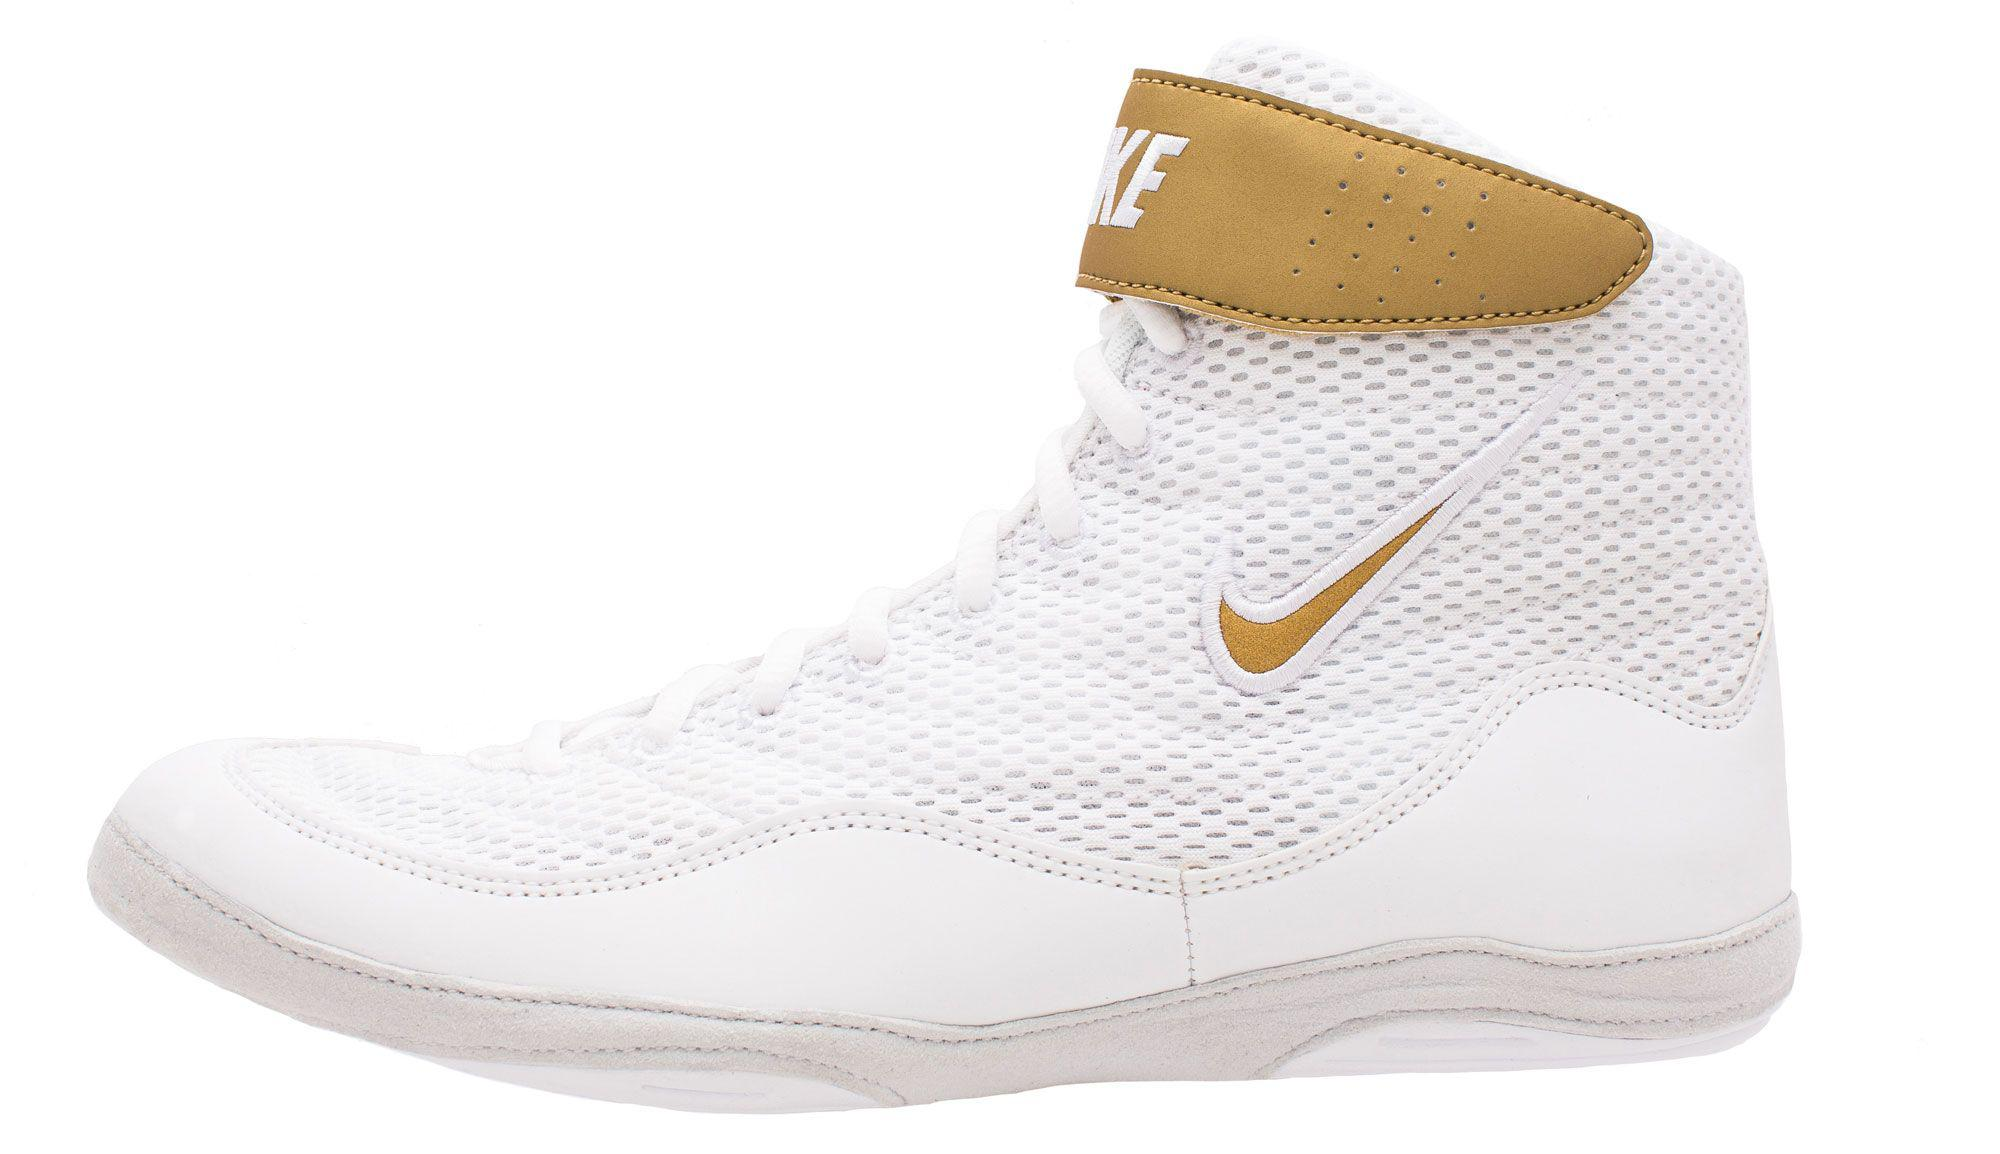 Lyst - Nike Inflict 3 Wrestling Shoes in White for Men 6f6101c35